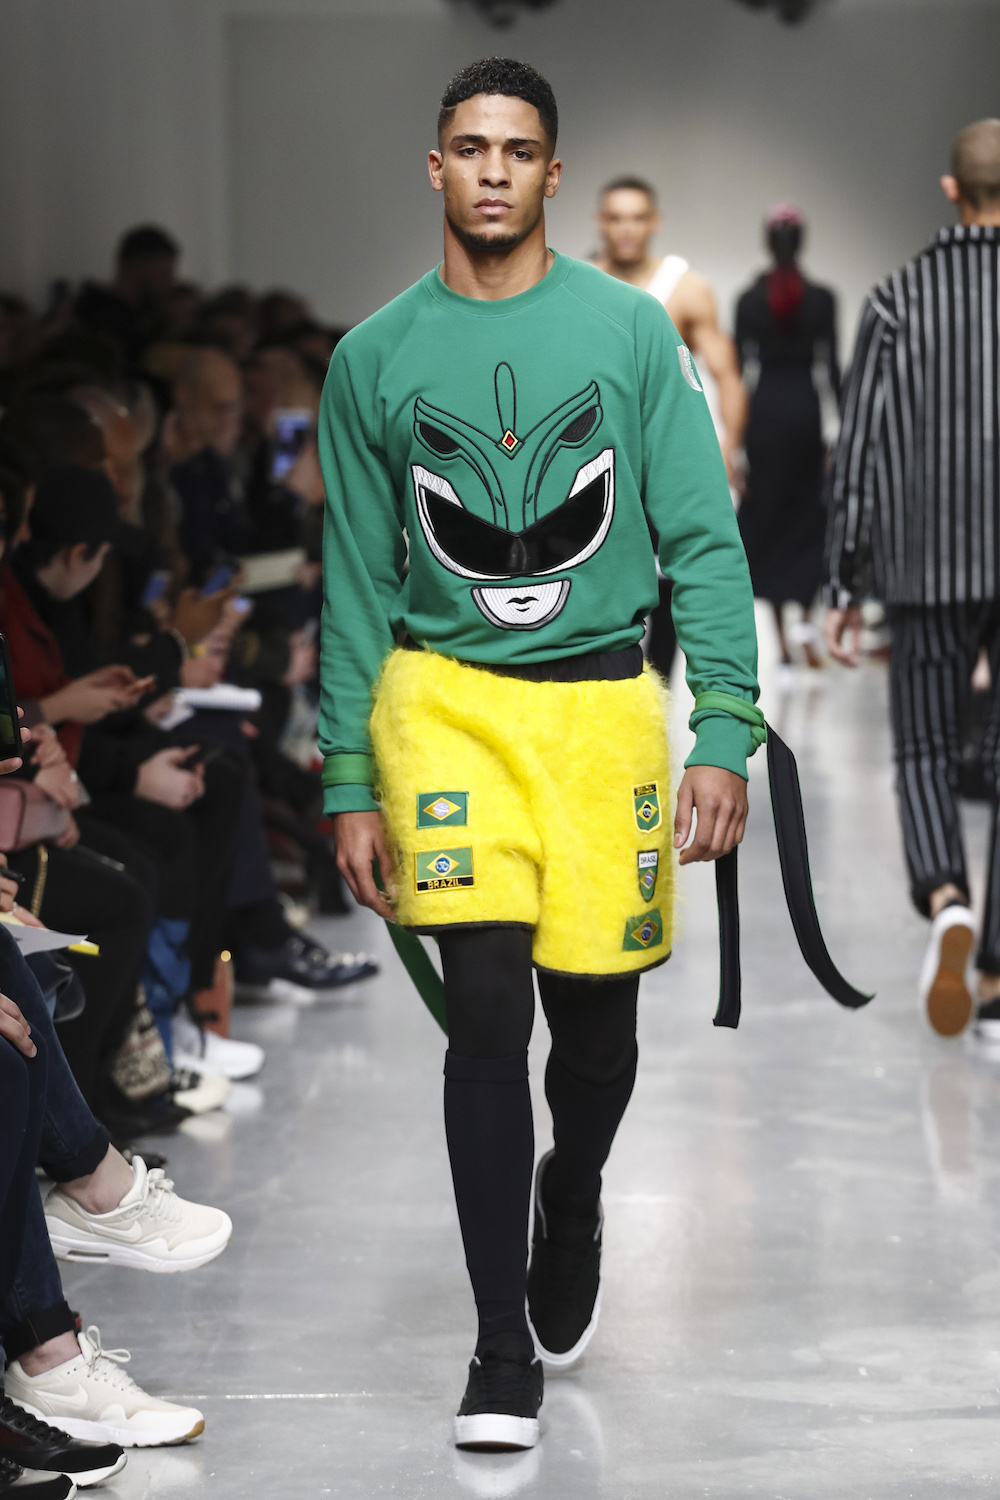 Bobby Abley Mighty Morphin Power Rangers - 1839471